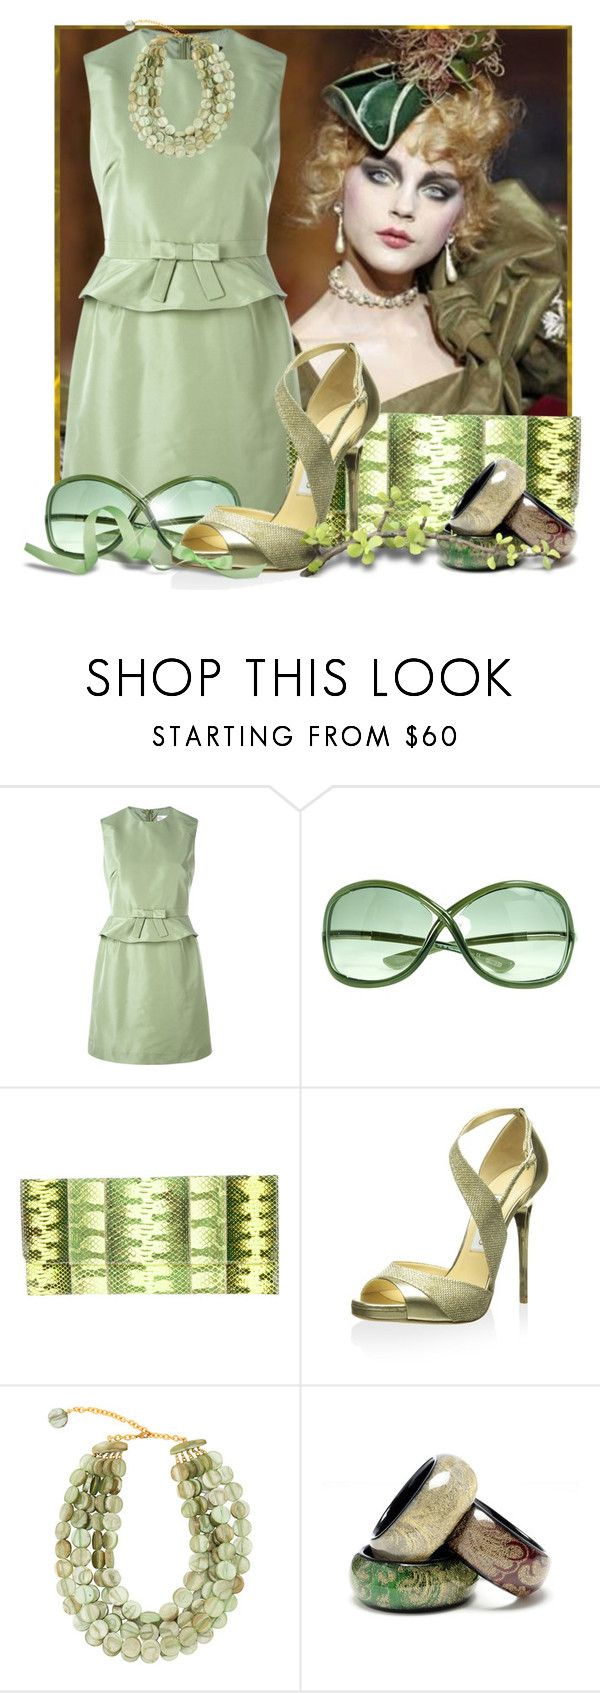 """""""Shades of Sage"""" by doozer ❤ liked on Polyvore featuring RED Valentino, Tom Ford, Carlos Falchi, Jimmy Choo, Dominique Denaive and Amrita Singh"""